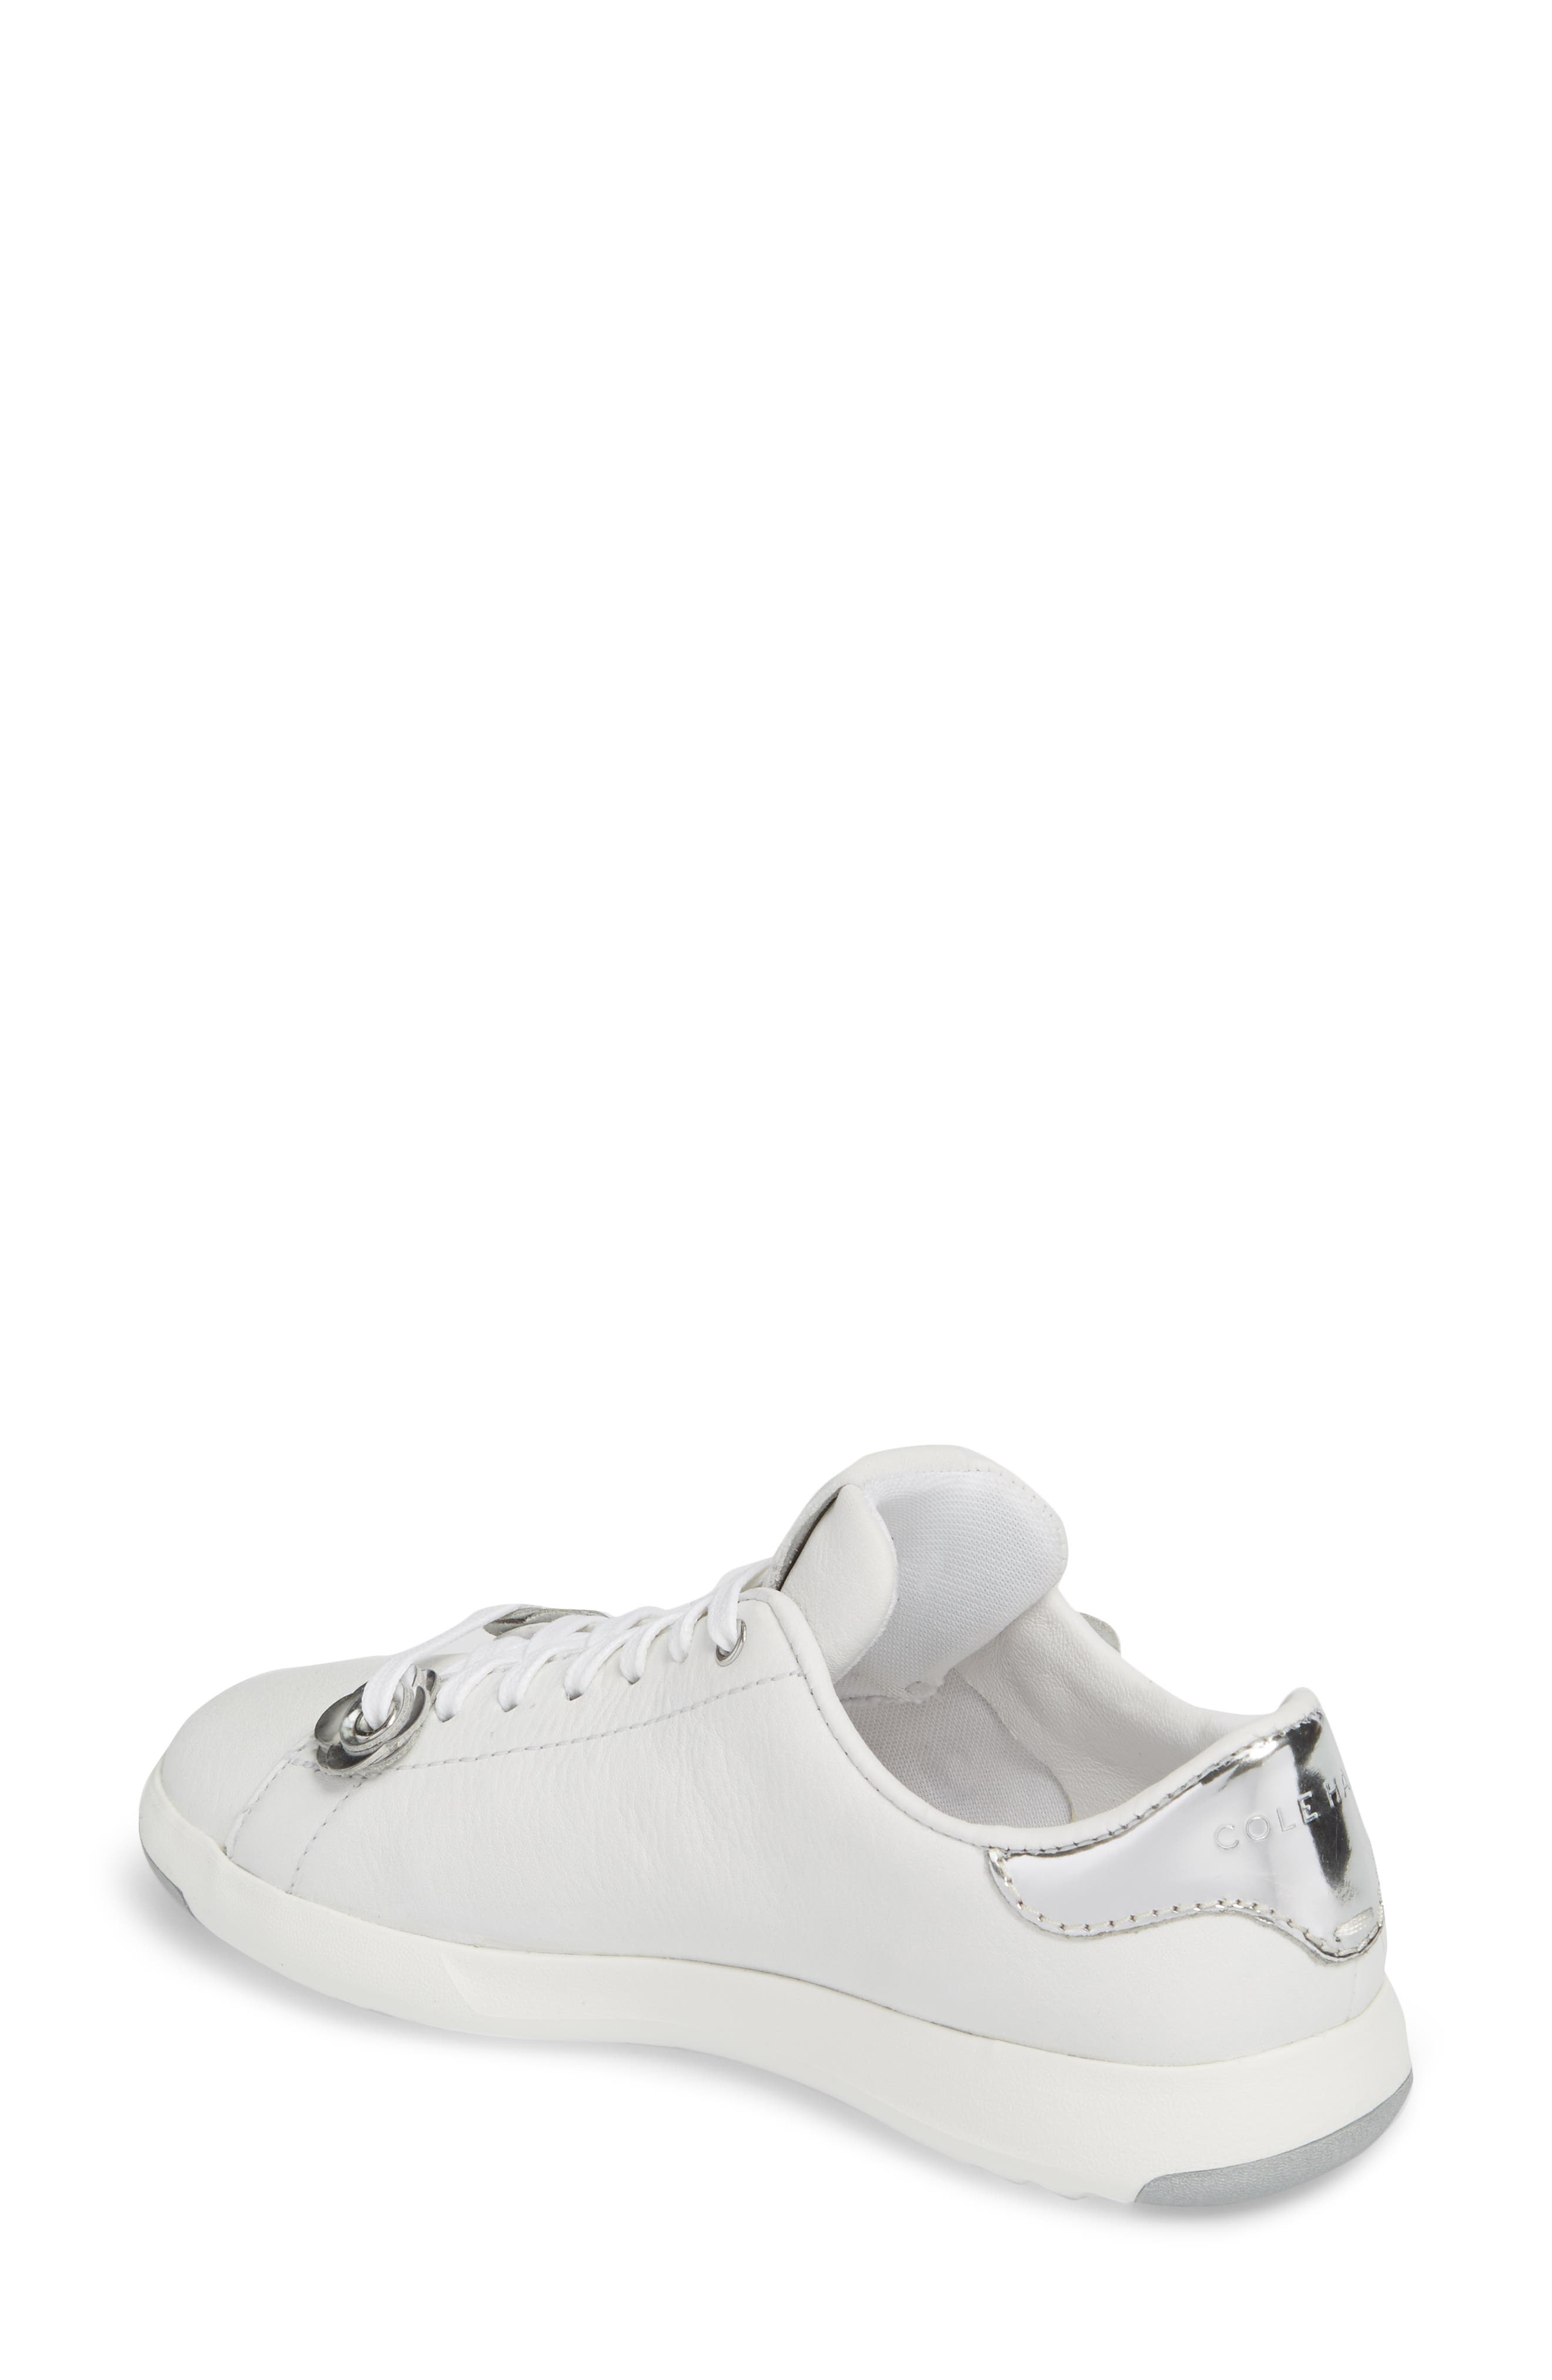 GrandPro Tennis Sneaker,                             Alternate thumbnail 2, color,                             White Leather